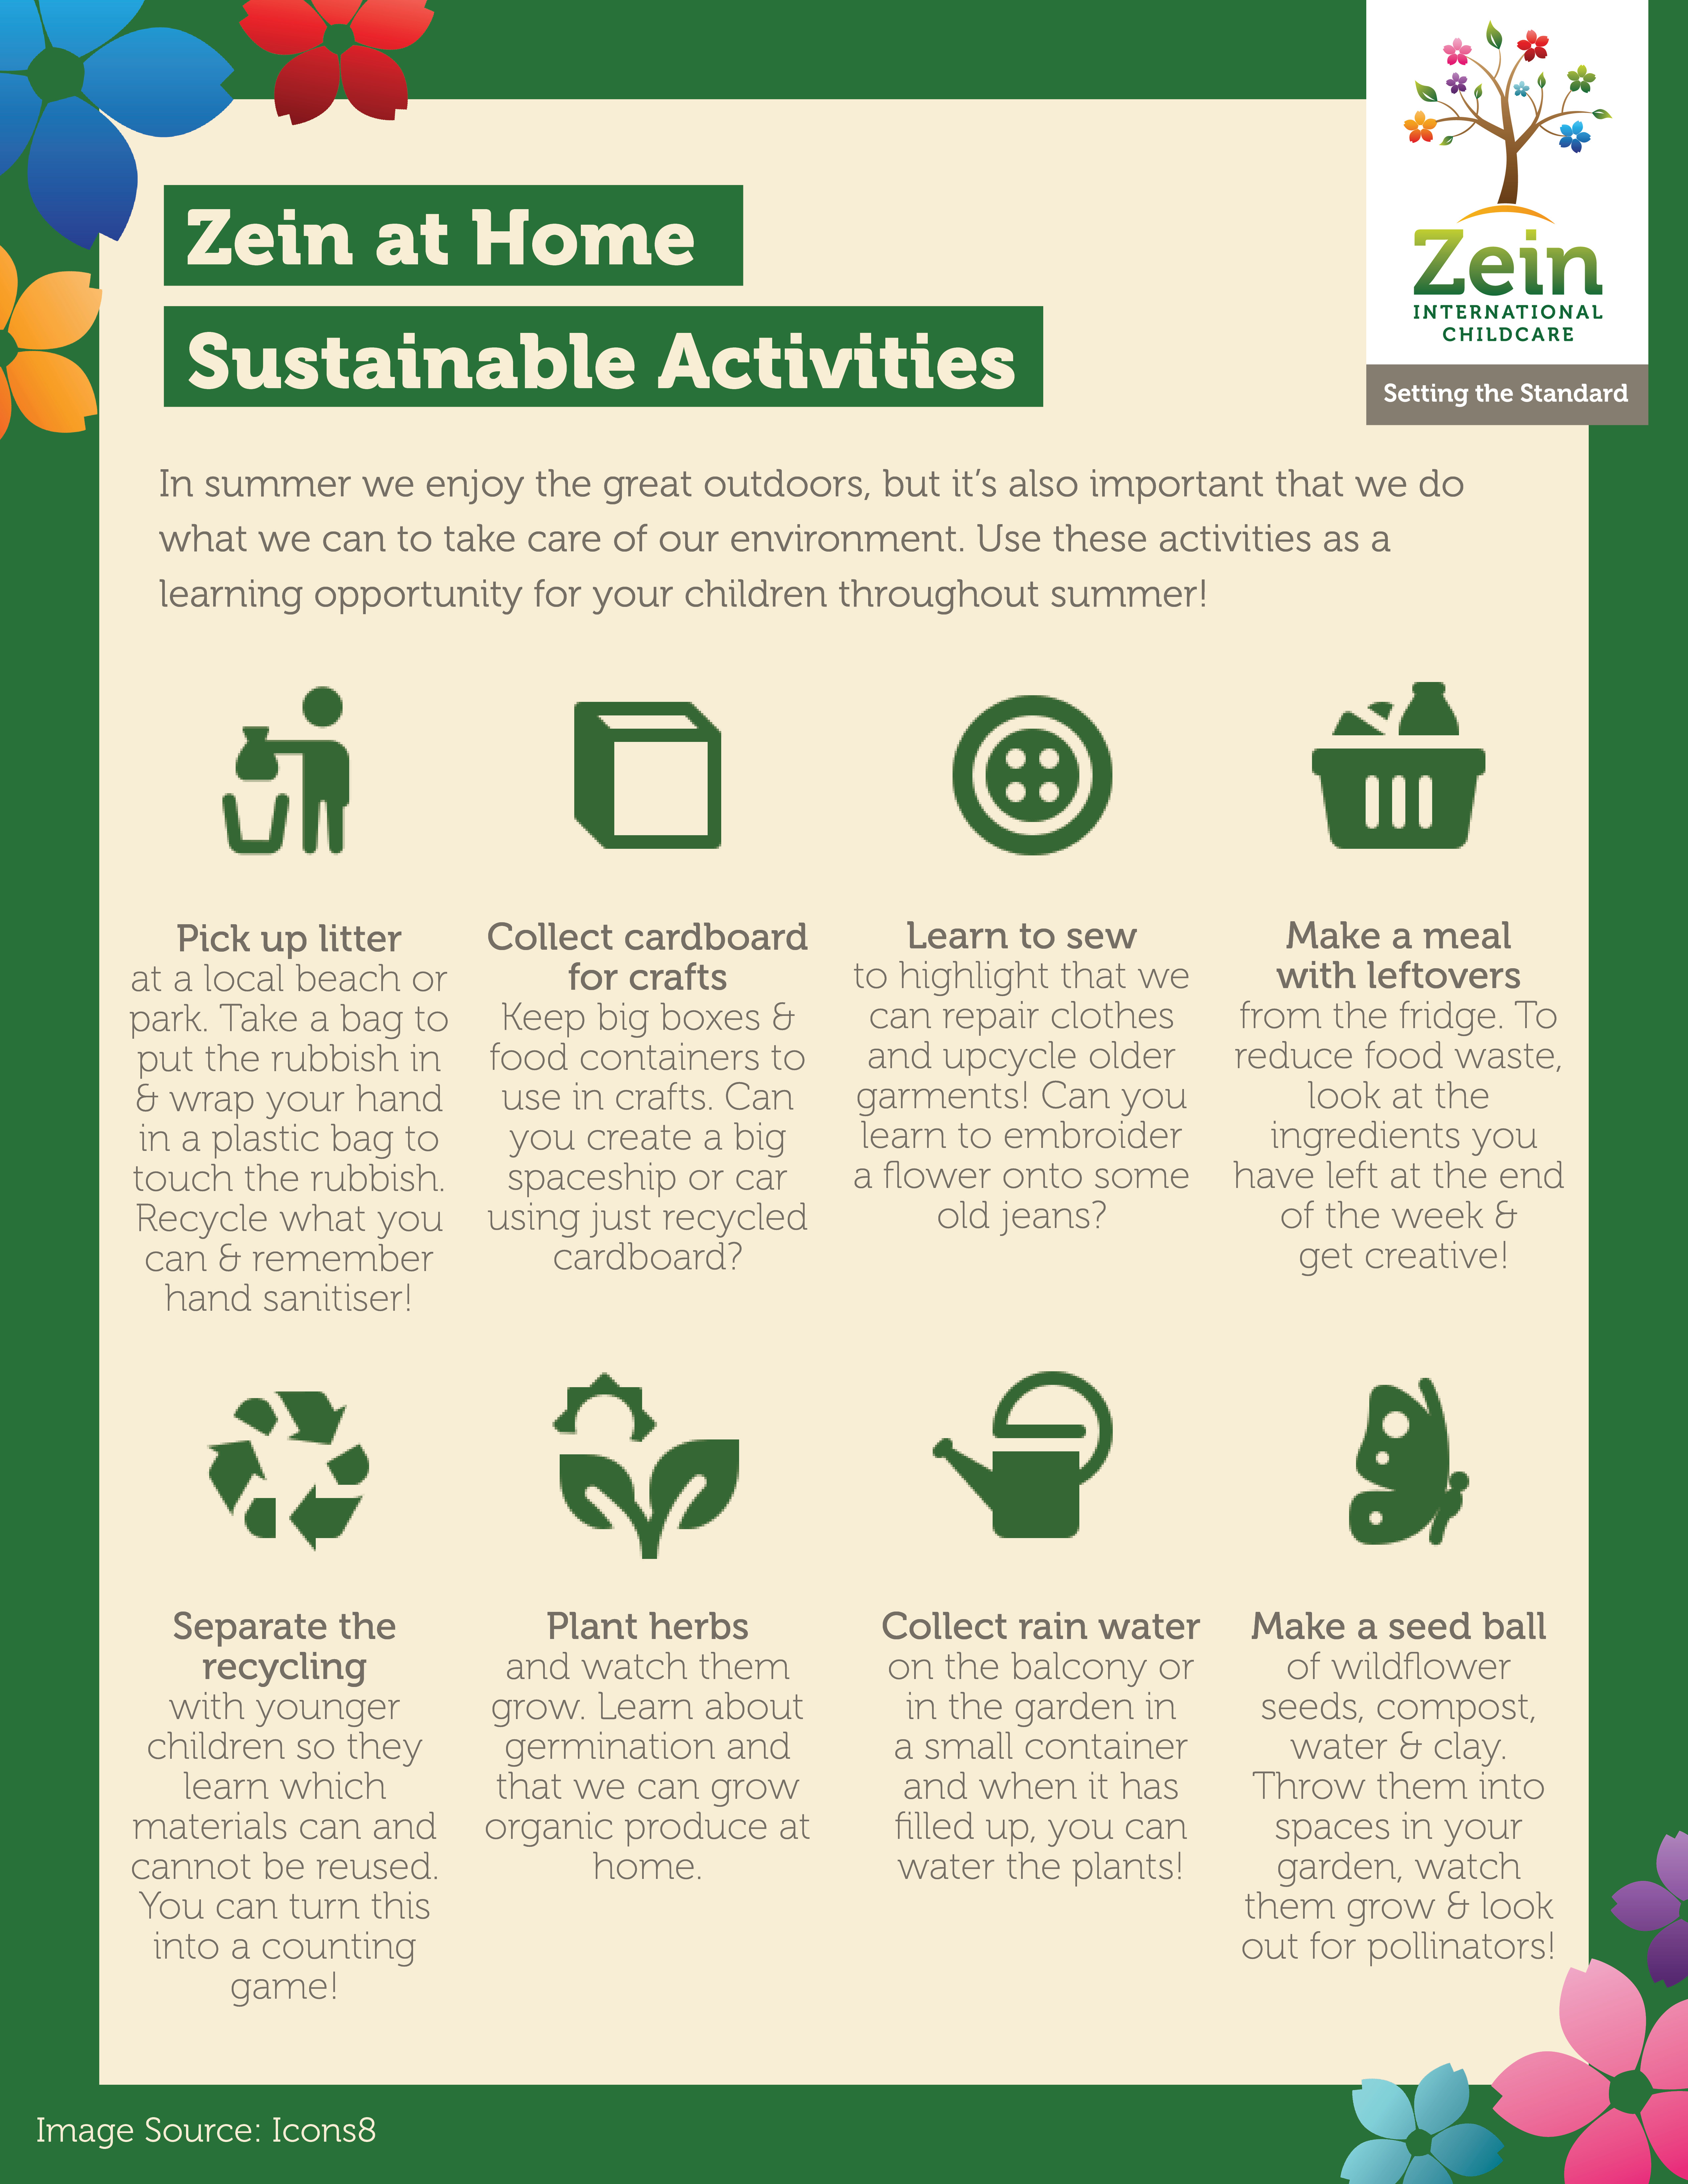 Sustainable childcare in The Hague, childcare activity ideas and after school care.